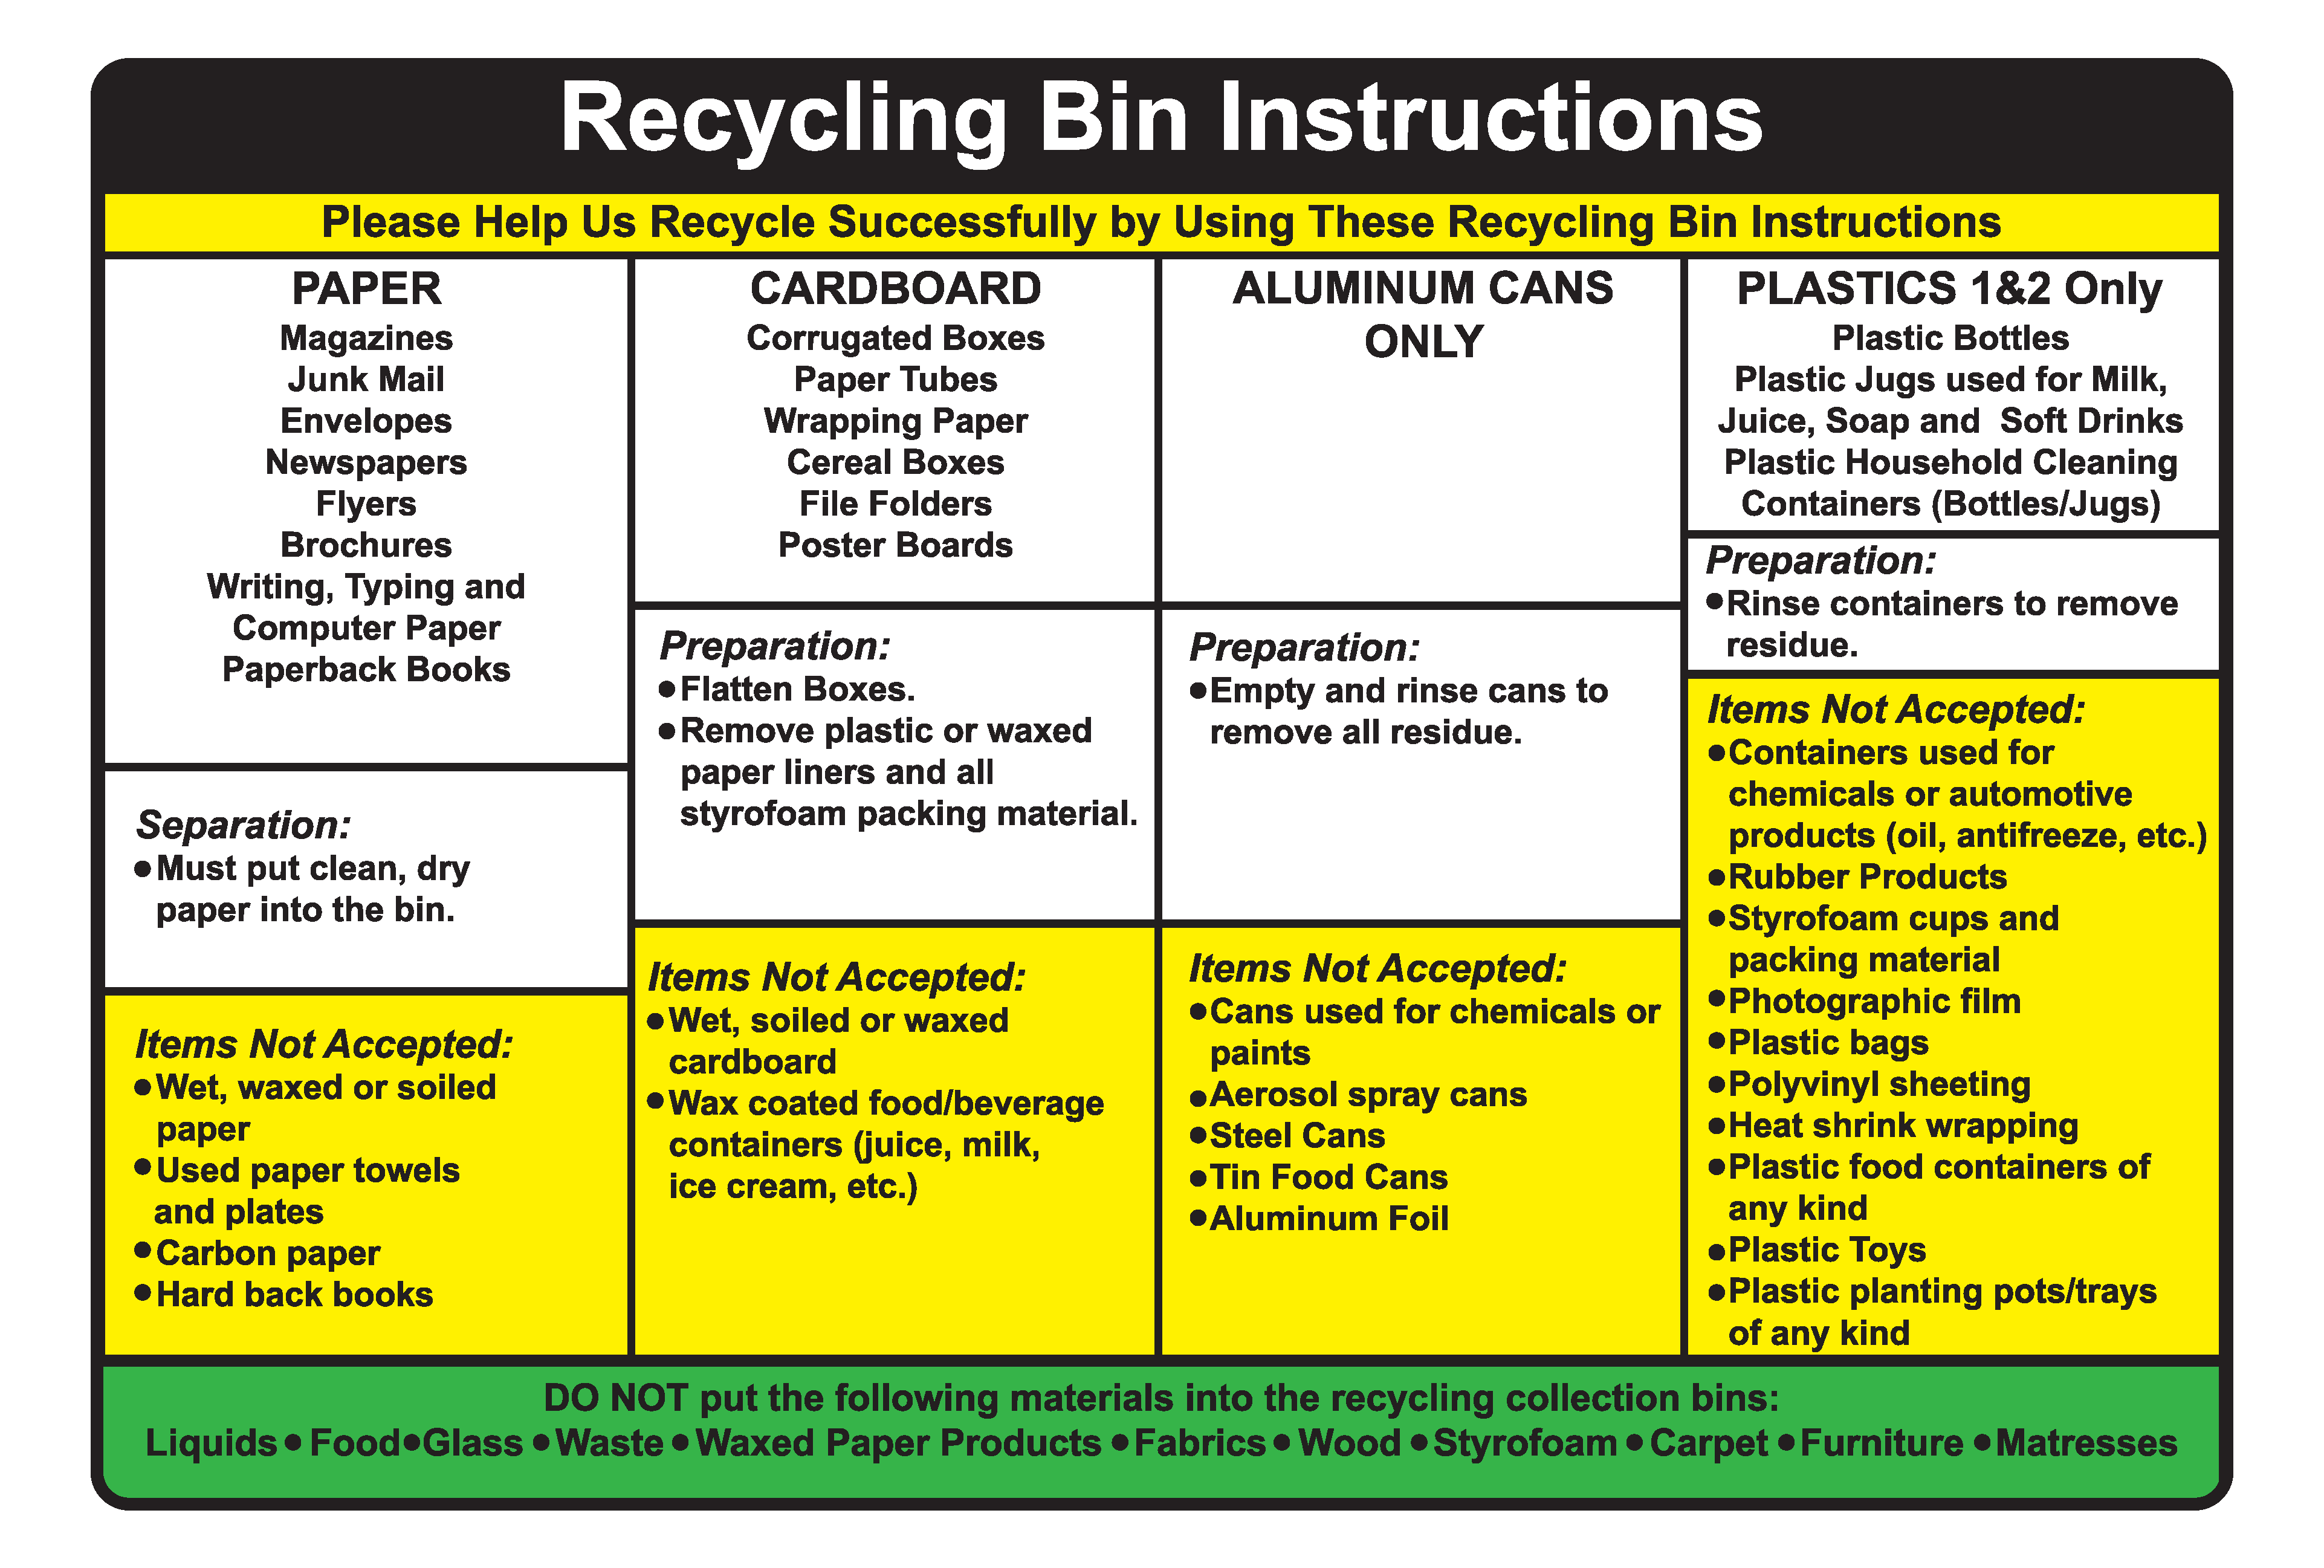 Indiana pike county stendal - Recyclinginstructions_decal